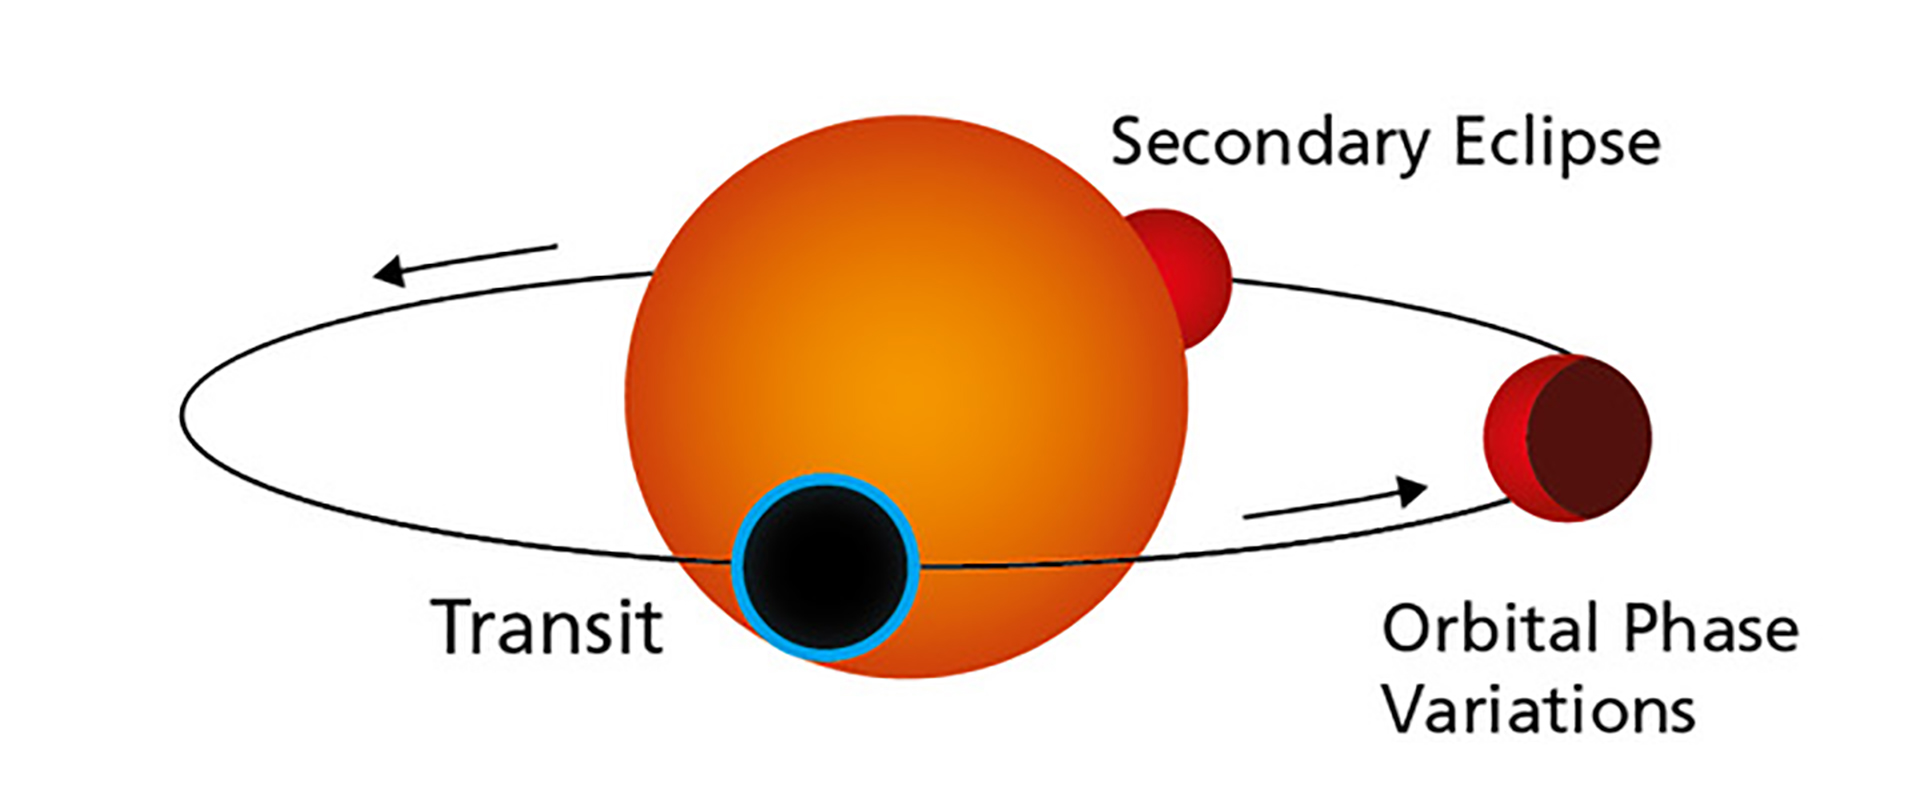 The graph illustrates the orbit of a transiting rocky exoplanet like Gliese 486b around its host star. During the transit, the planet eclipses the stellar disk. Simultaneously, a small portion of the starlight passes through the planet's atmosphere. As Gliese 486b continues to orbit, parts of the illuminated hemisphere become visible as phases until the planet disappears behind the star. Credit: MPIA Graphics Department.